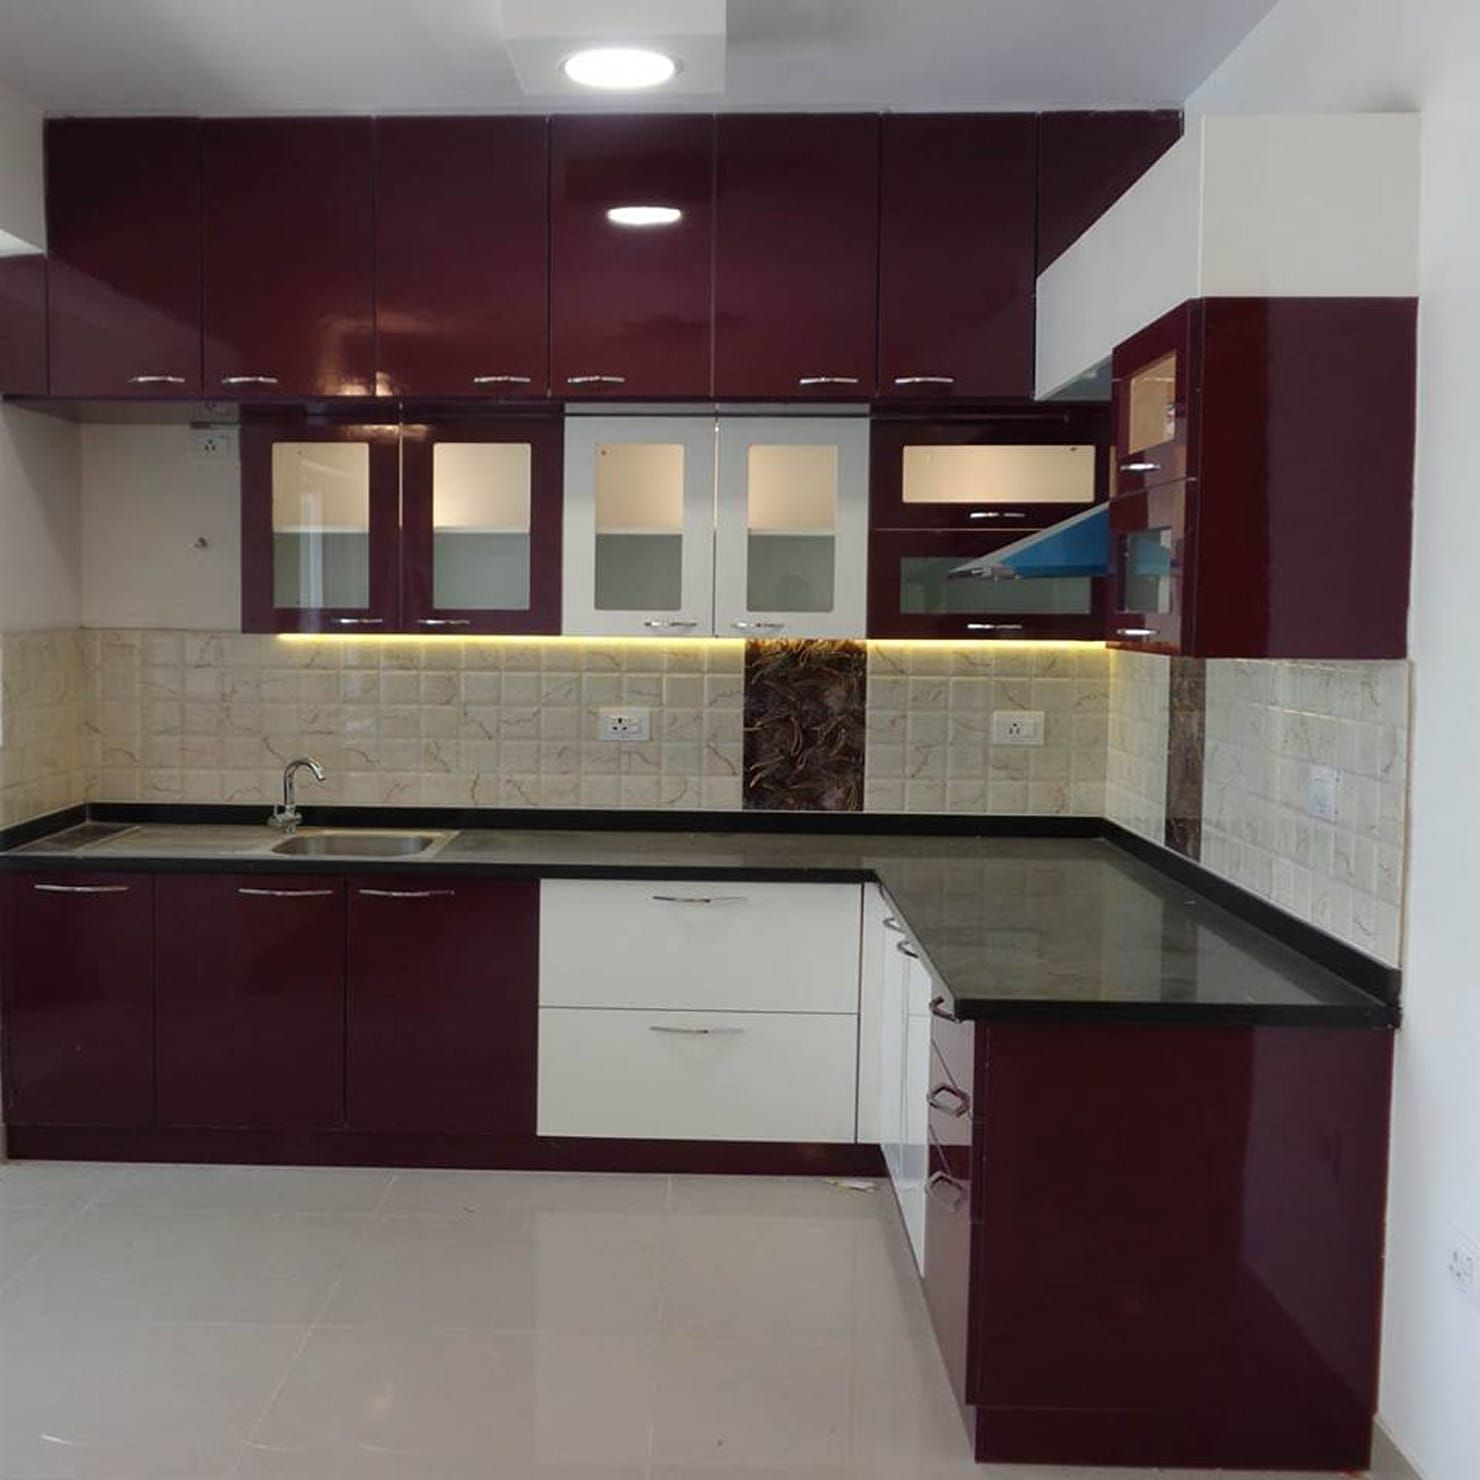 Asian By Homify Asian Homify Modern Kitchen Cabinet Design Indian Kitchen Design Ideas Kitchen Cupboard Designs